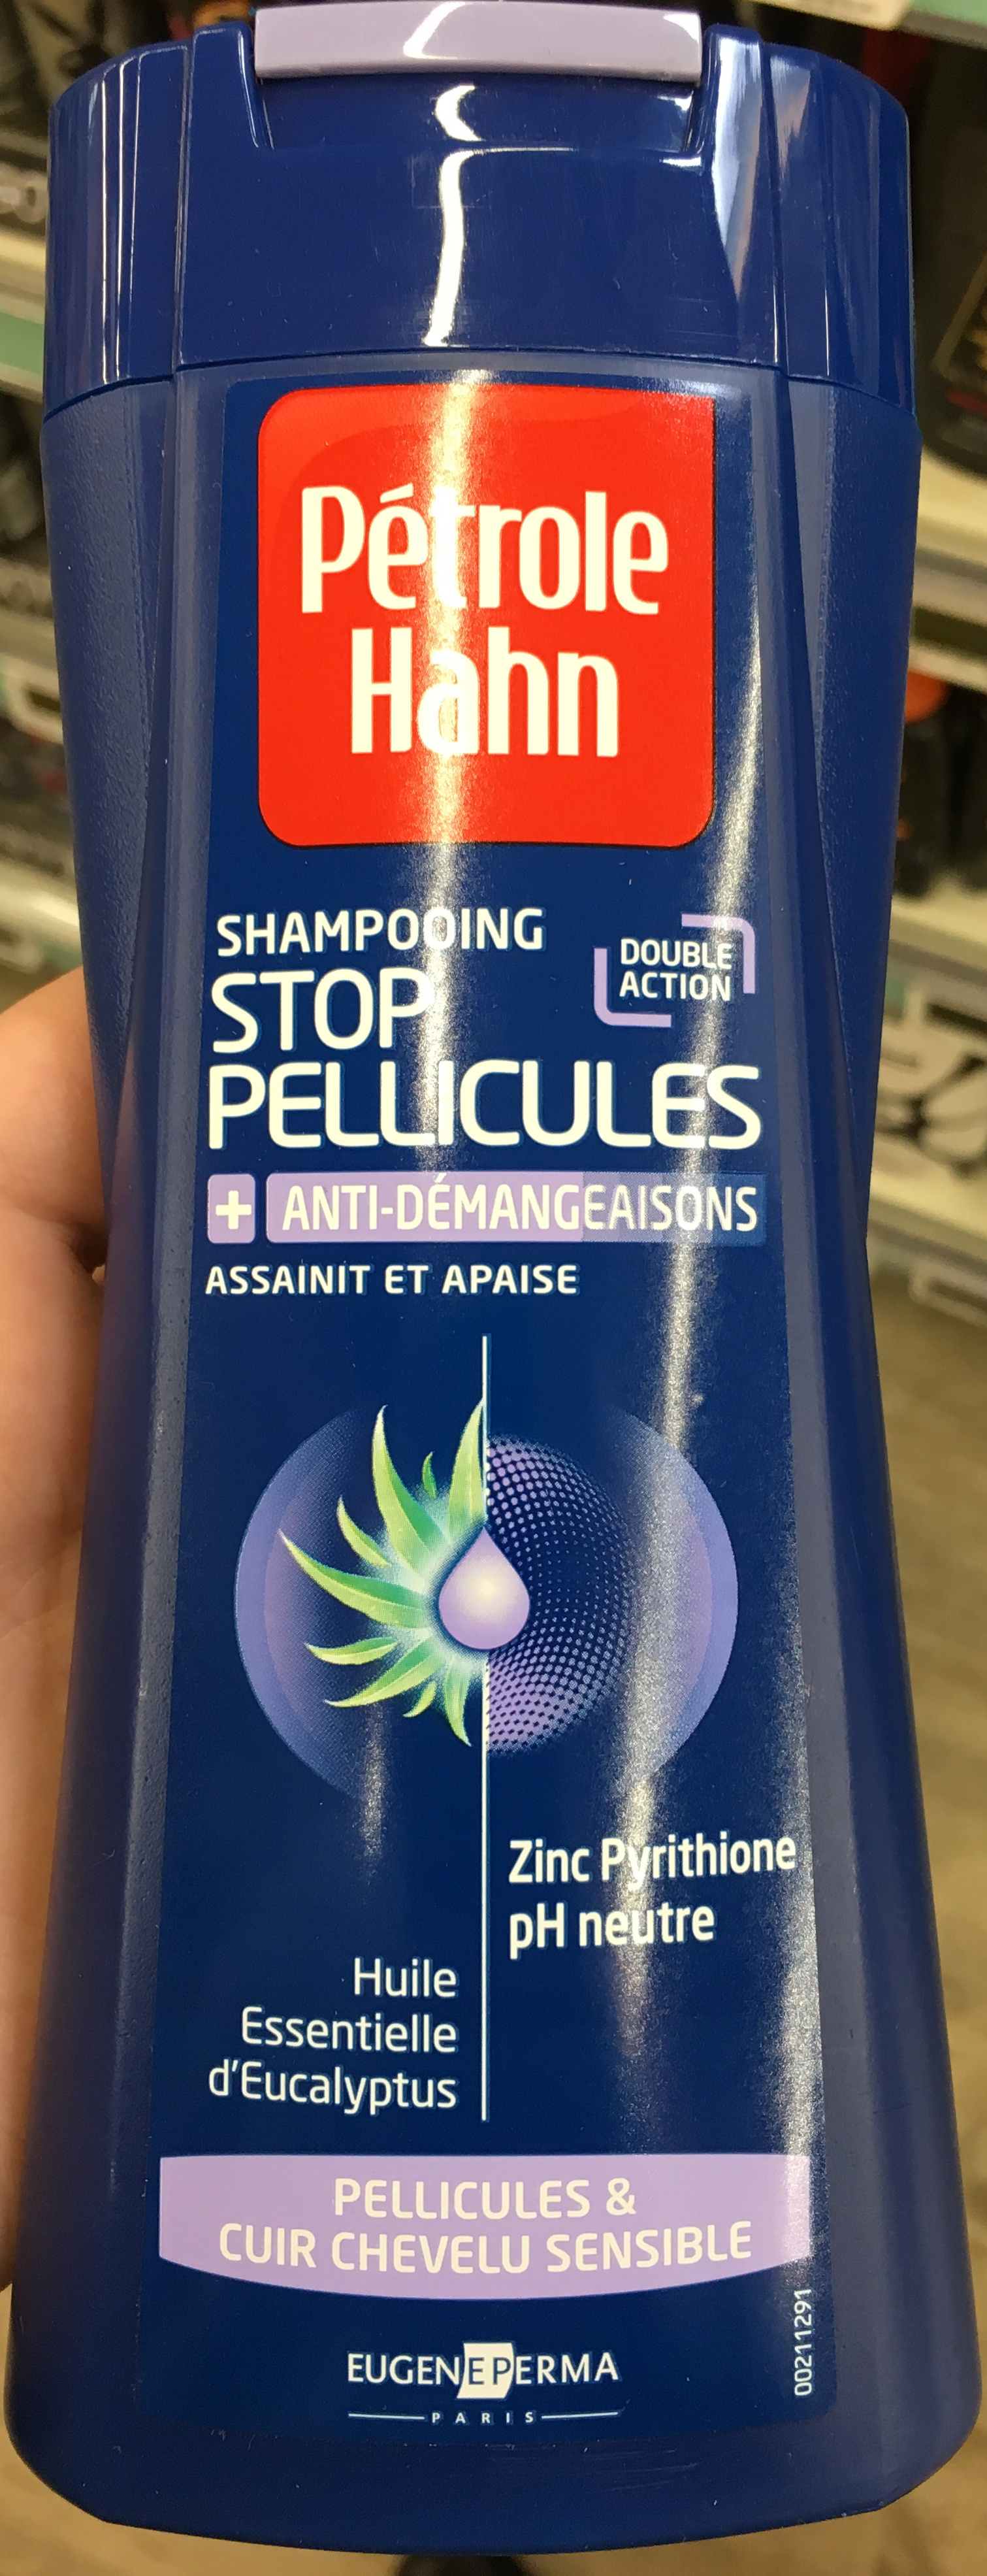 Shampooing Stop Pellicules + anti-démangeaisons - Product - fr